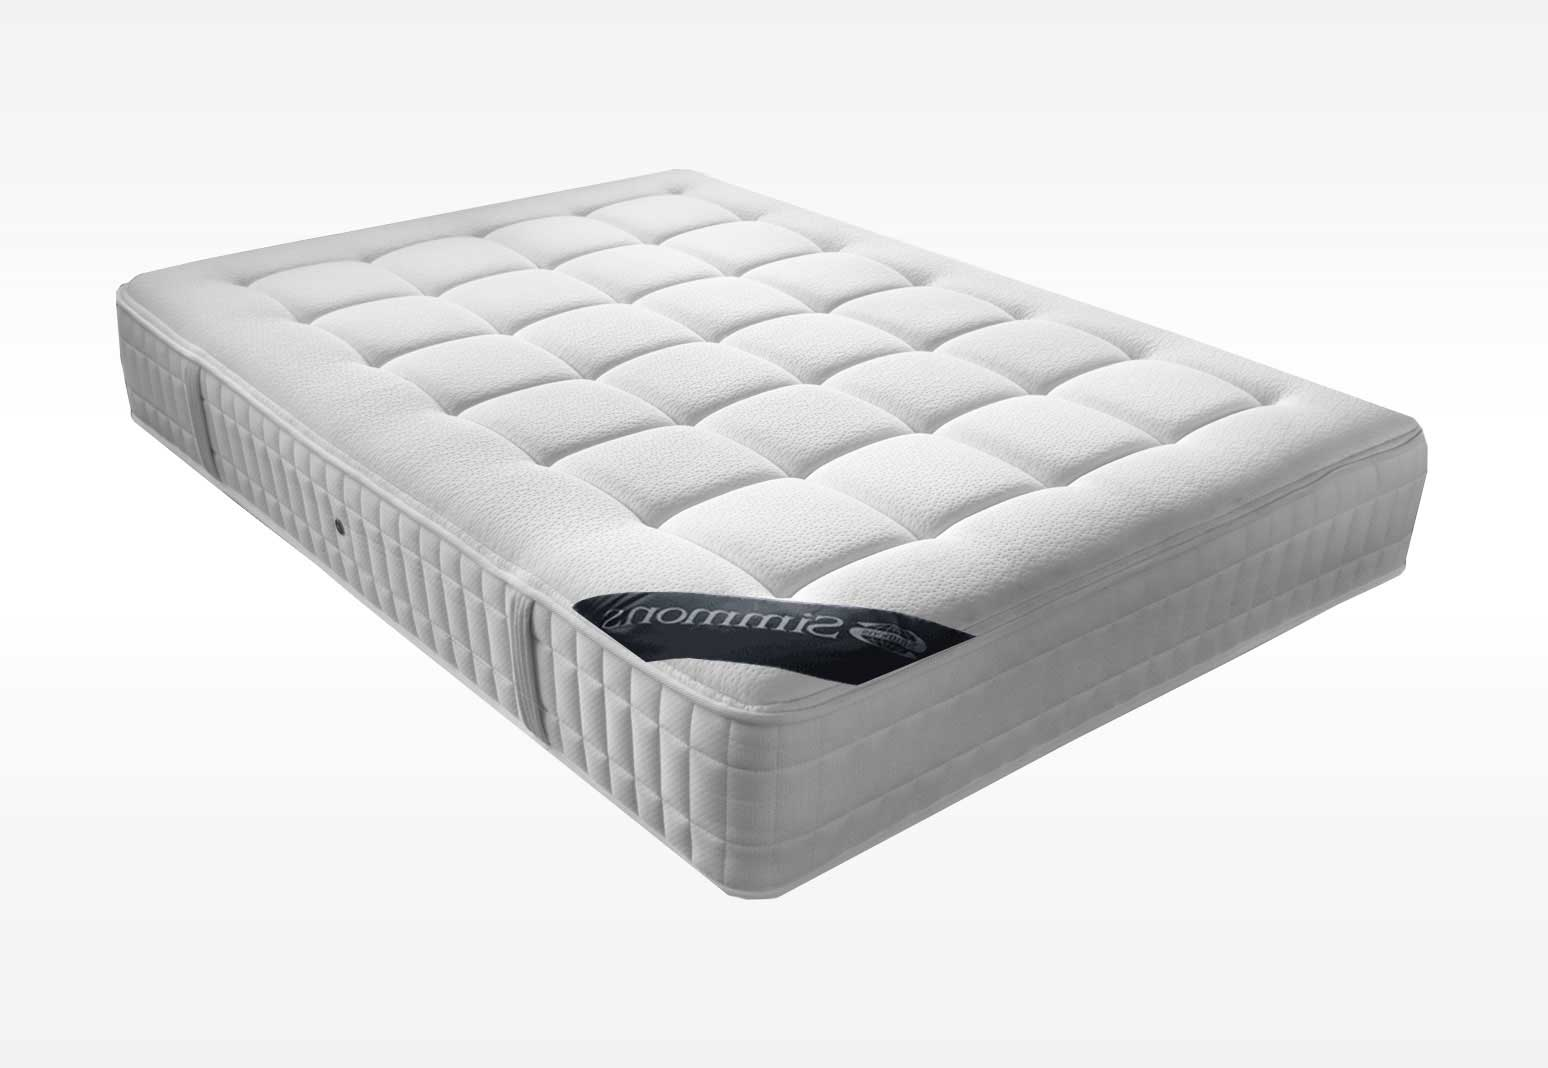 matelas simmons altesse matelas simmons x avec simmons chelsea park avec matelas simmons. Black Bedroom Furniture Sets. Home Design Ideas